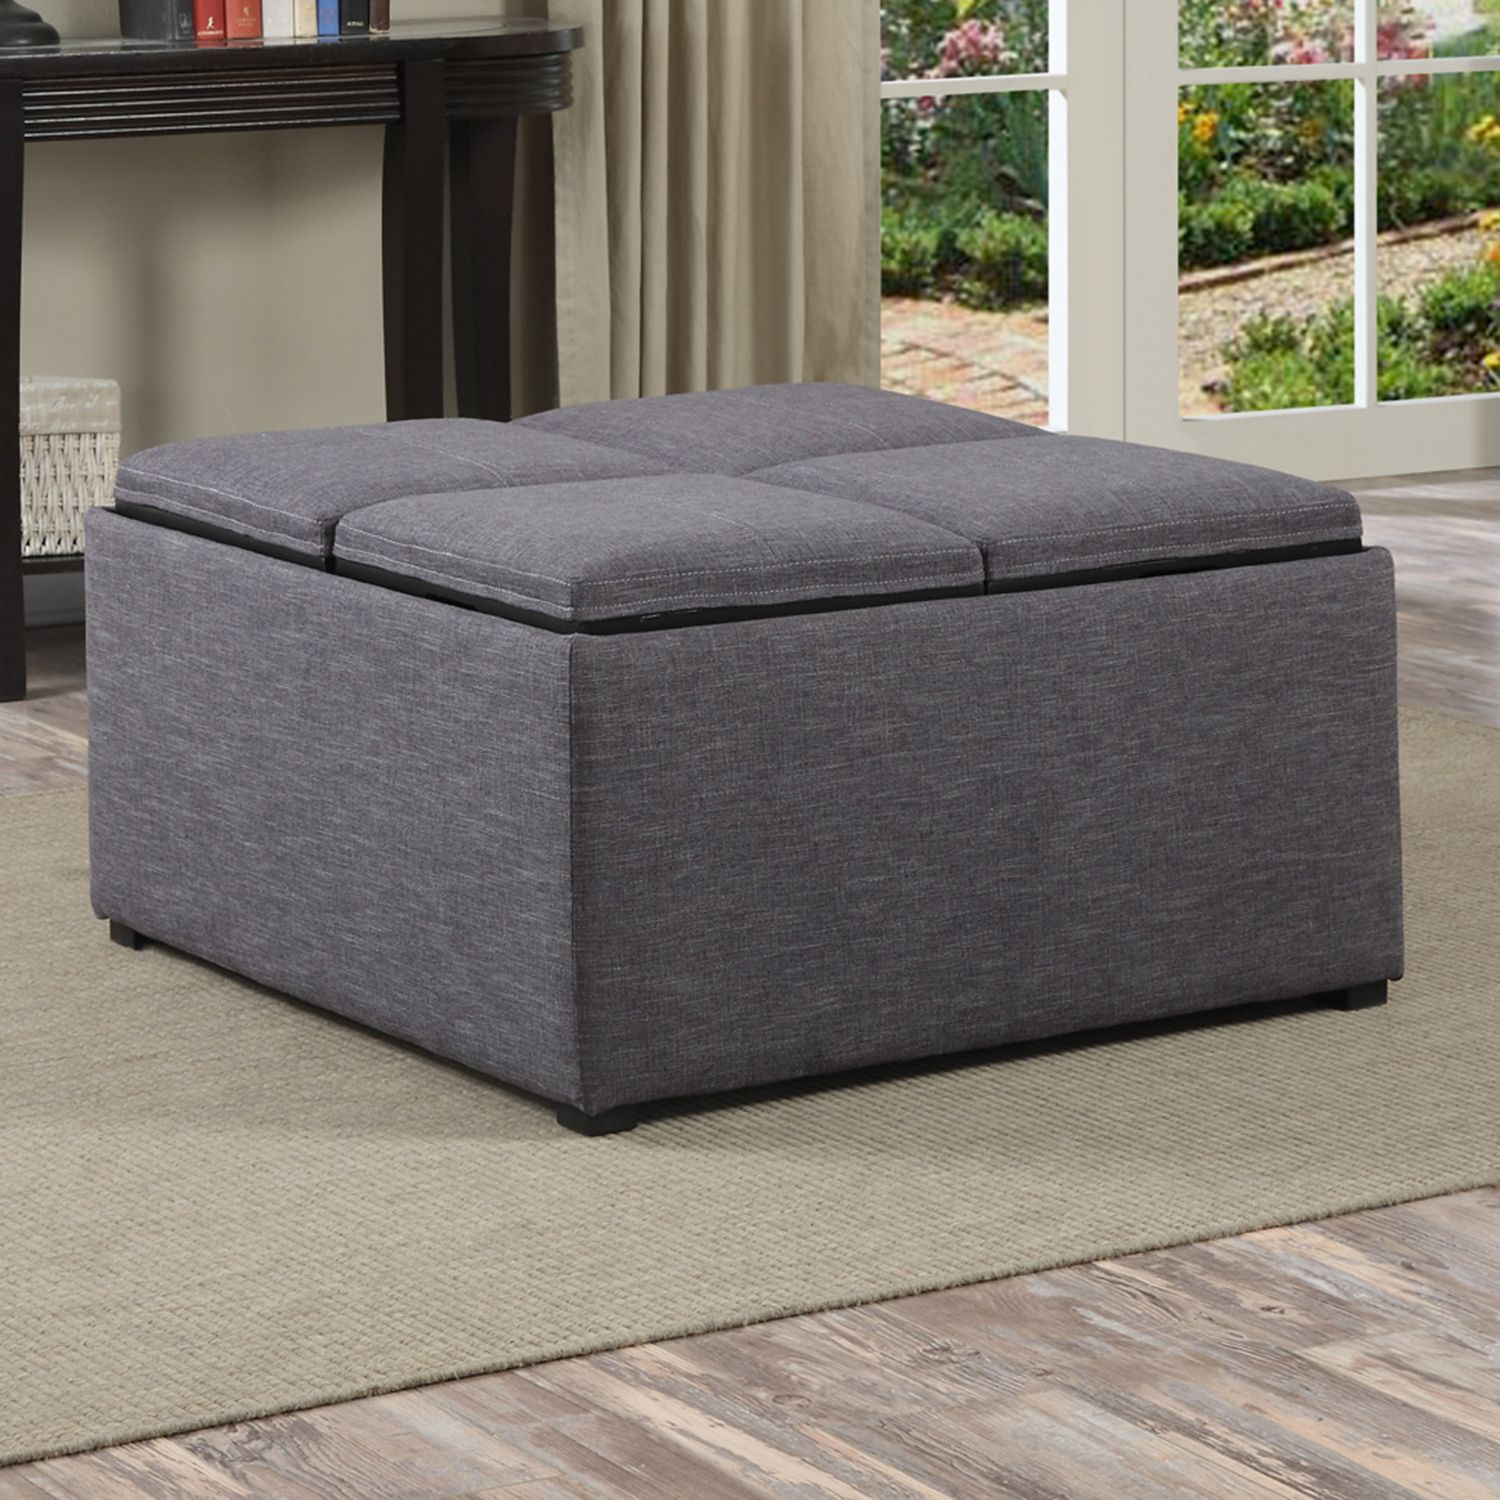 Home Avalon Coffee Table Storage Ottoman